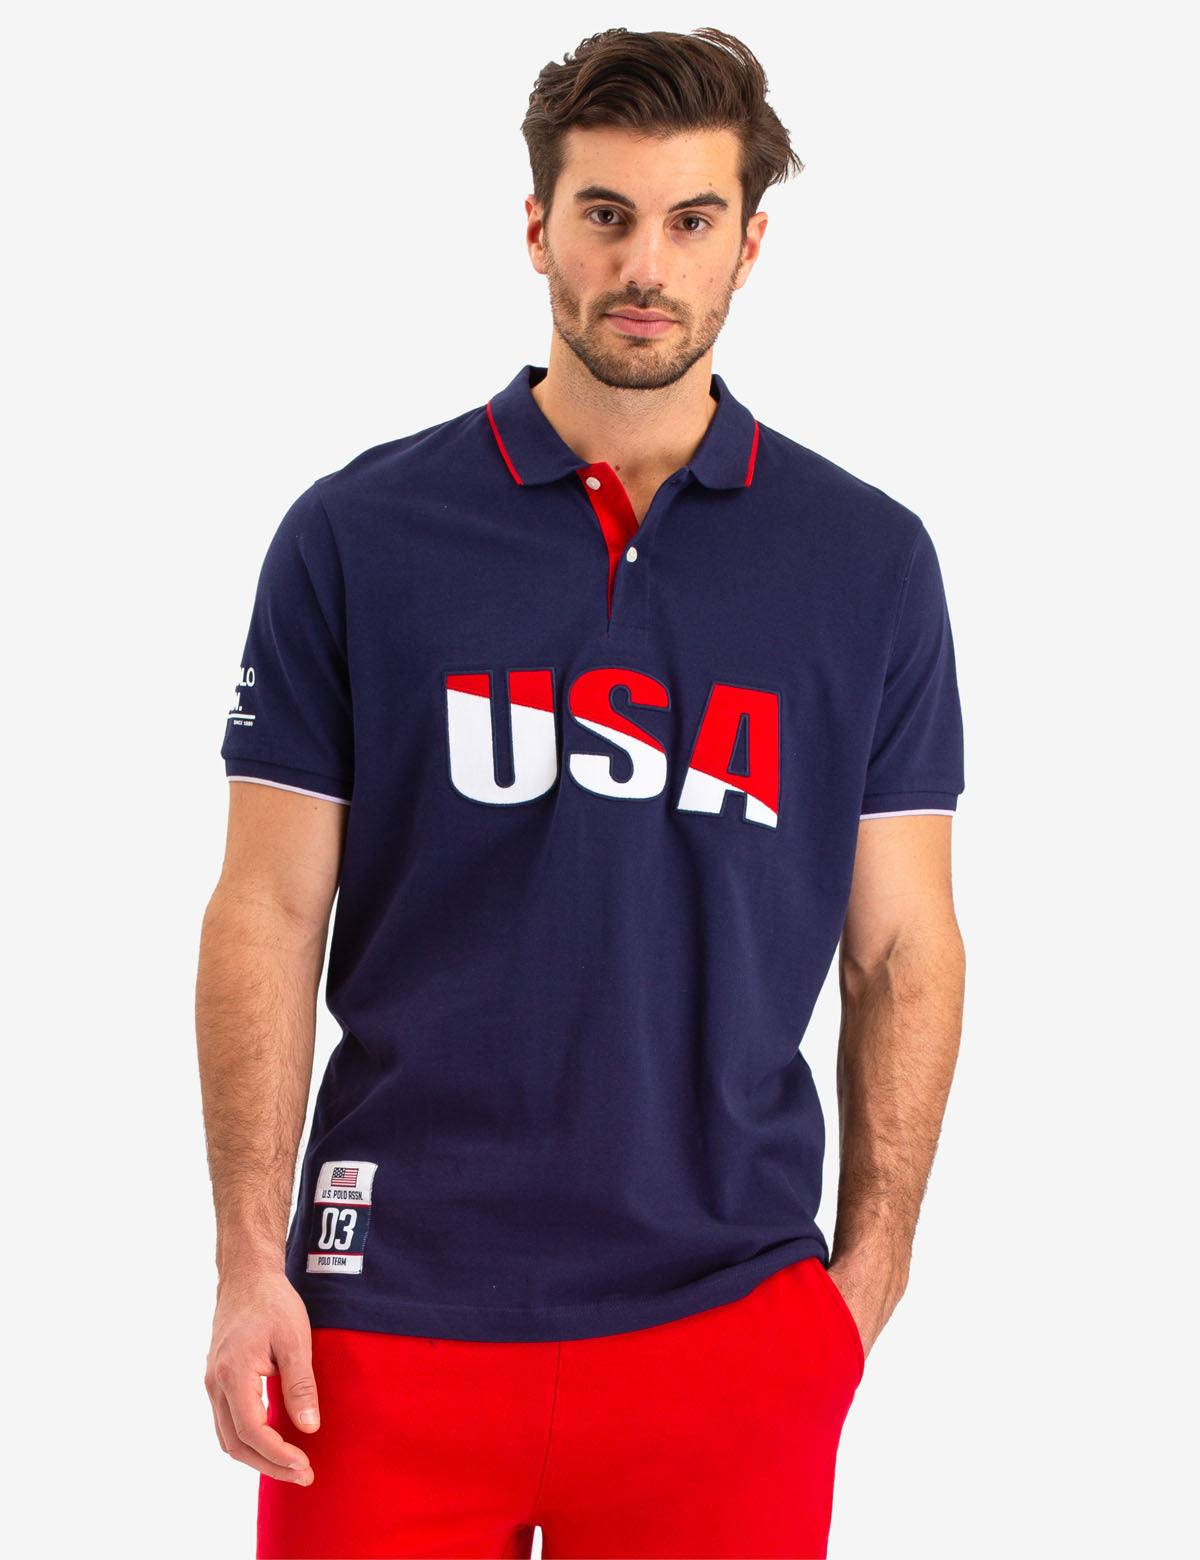 USA APPLIQUED LOGO POLO SHIRT - U.S. Polo Assn.